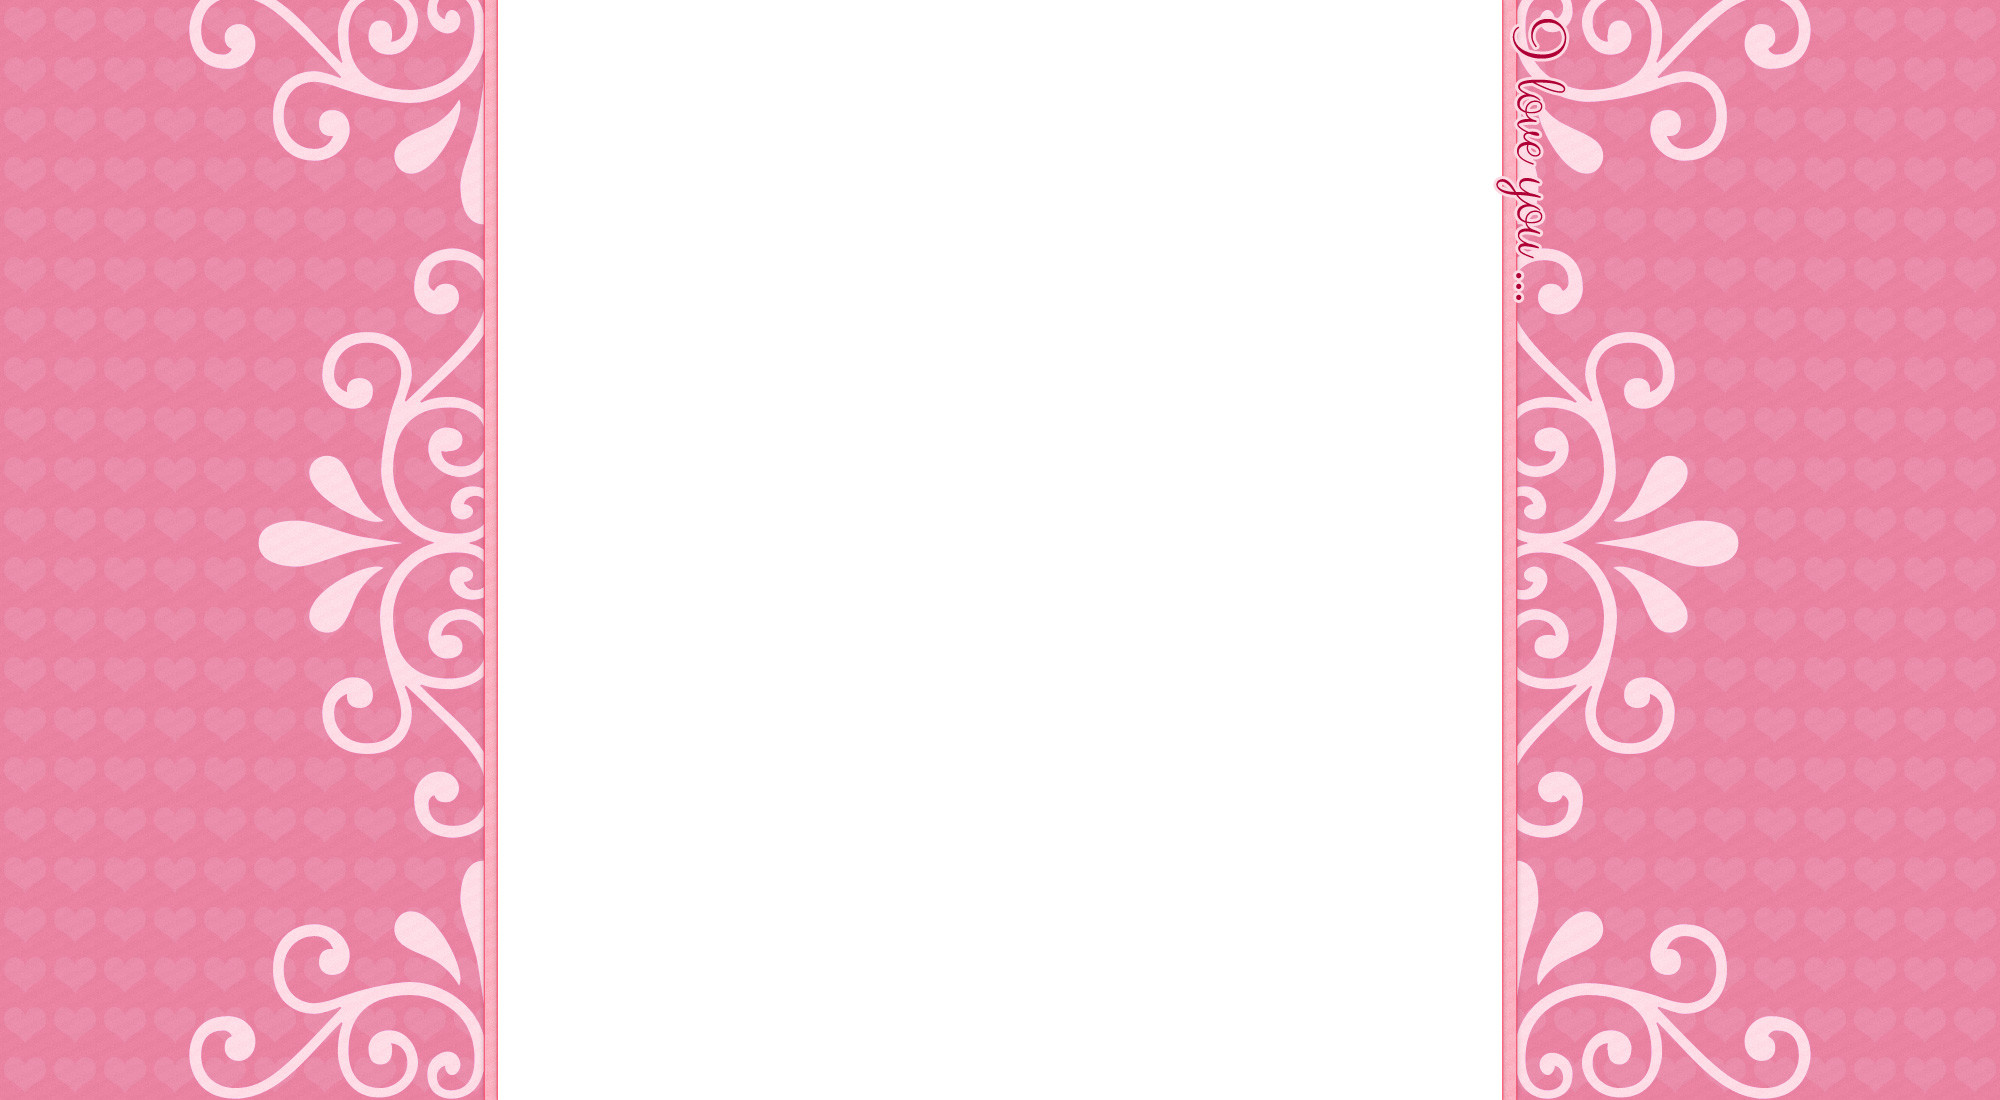 You might also like: Free Valentine's Blog Backgrounds